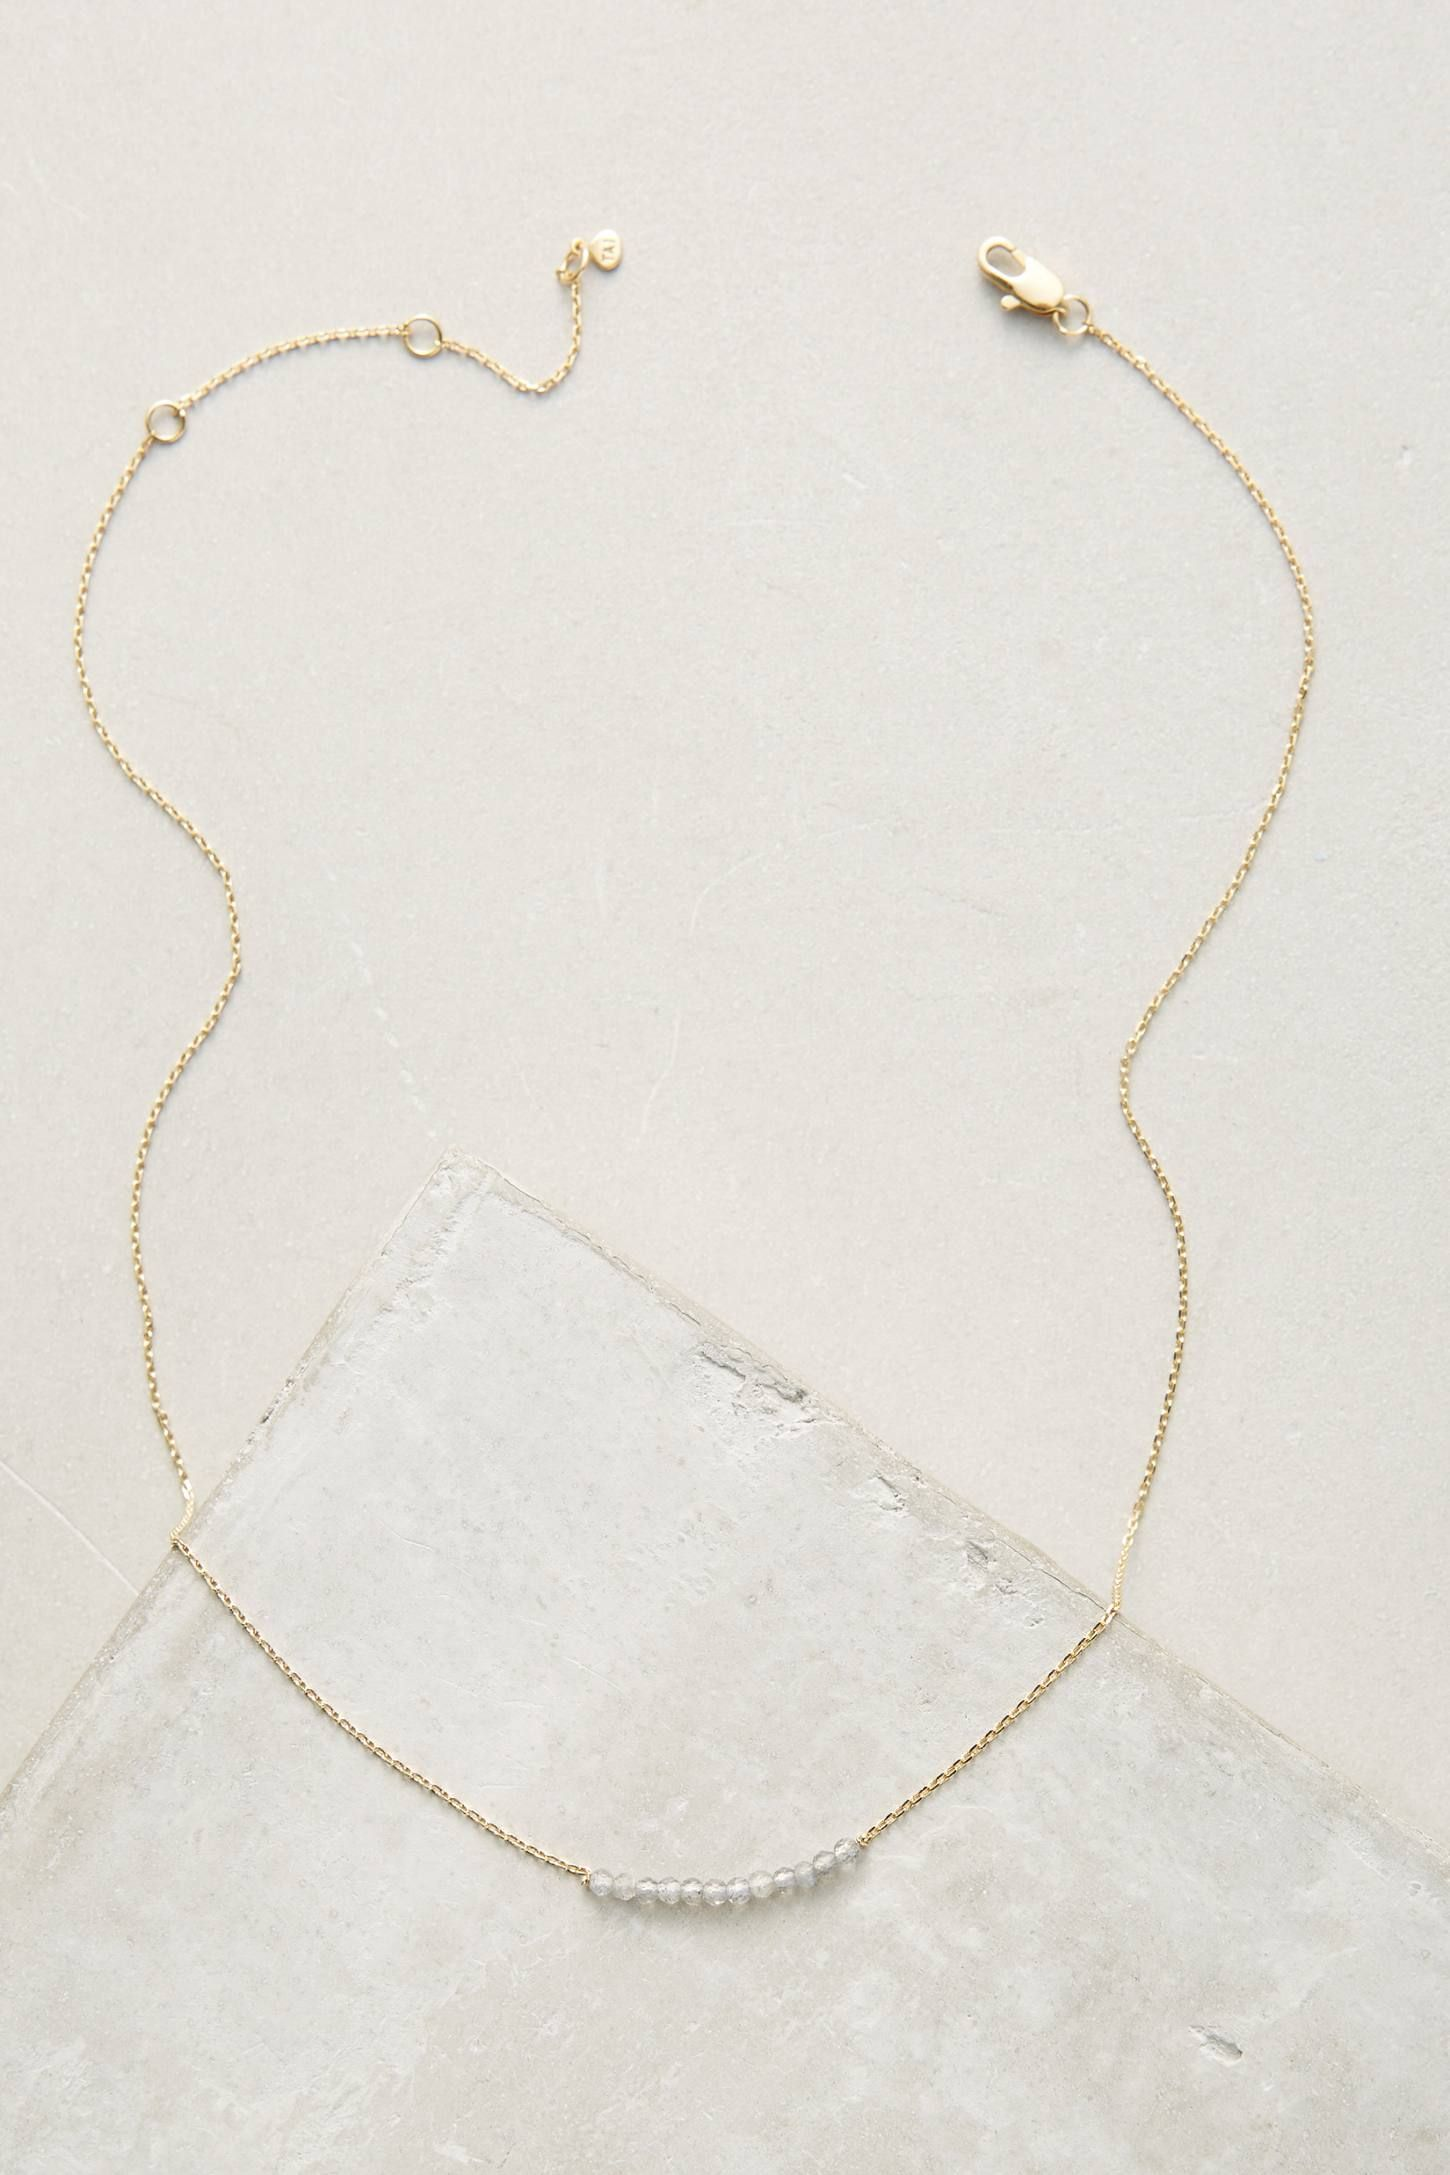 statement simple products hope vintage boutique necklace